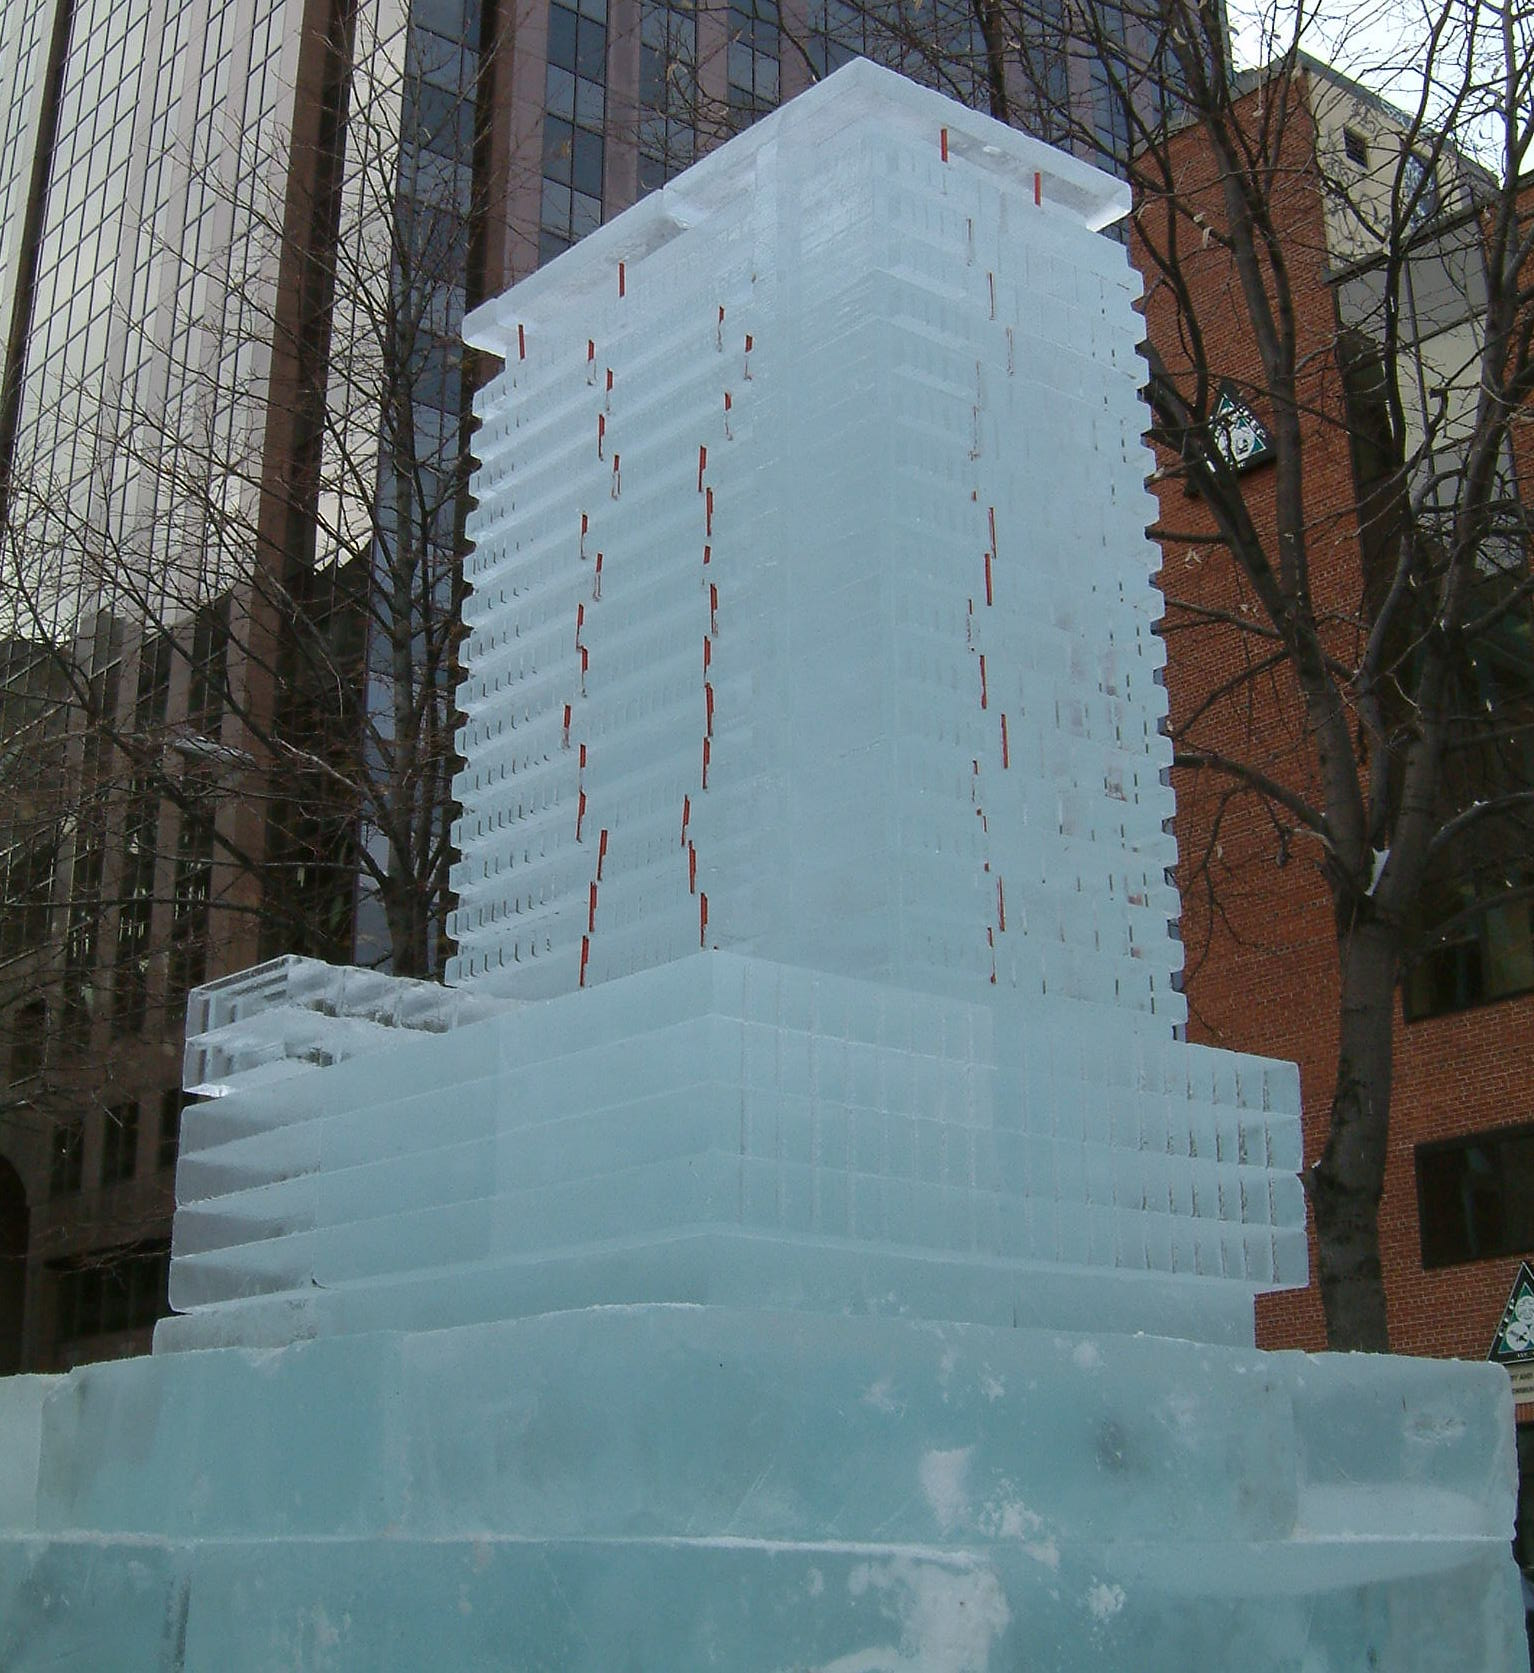 Building made out of ice (daytime view)